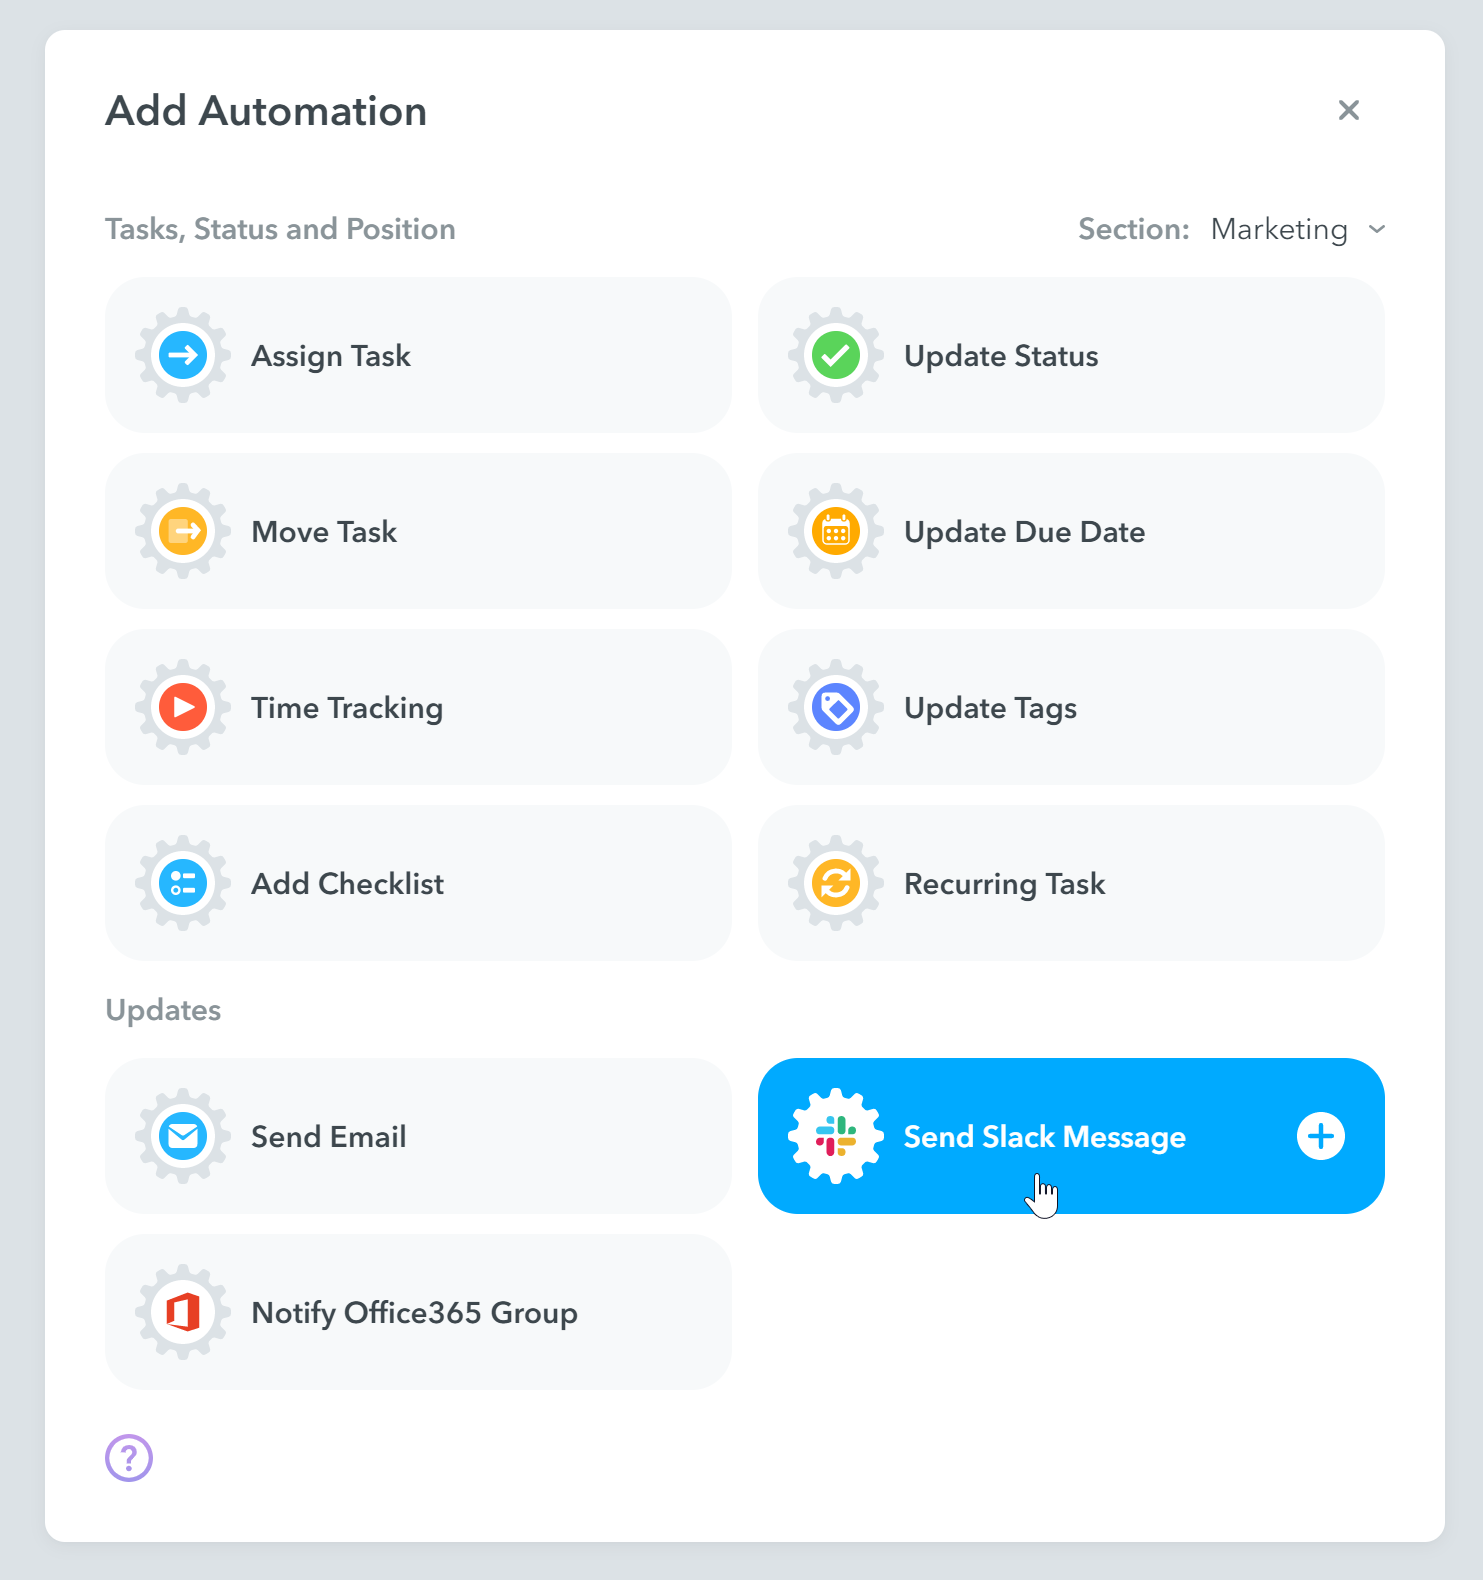 Product_Launch___MeisterTask_-_Google_Chrome_2019-08-07_11.45.32.png